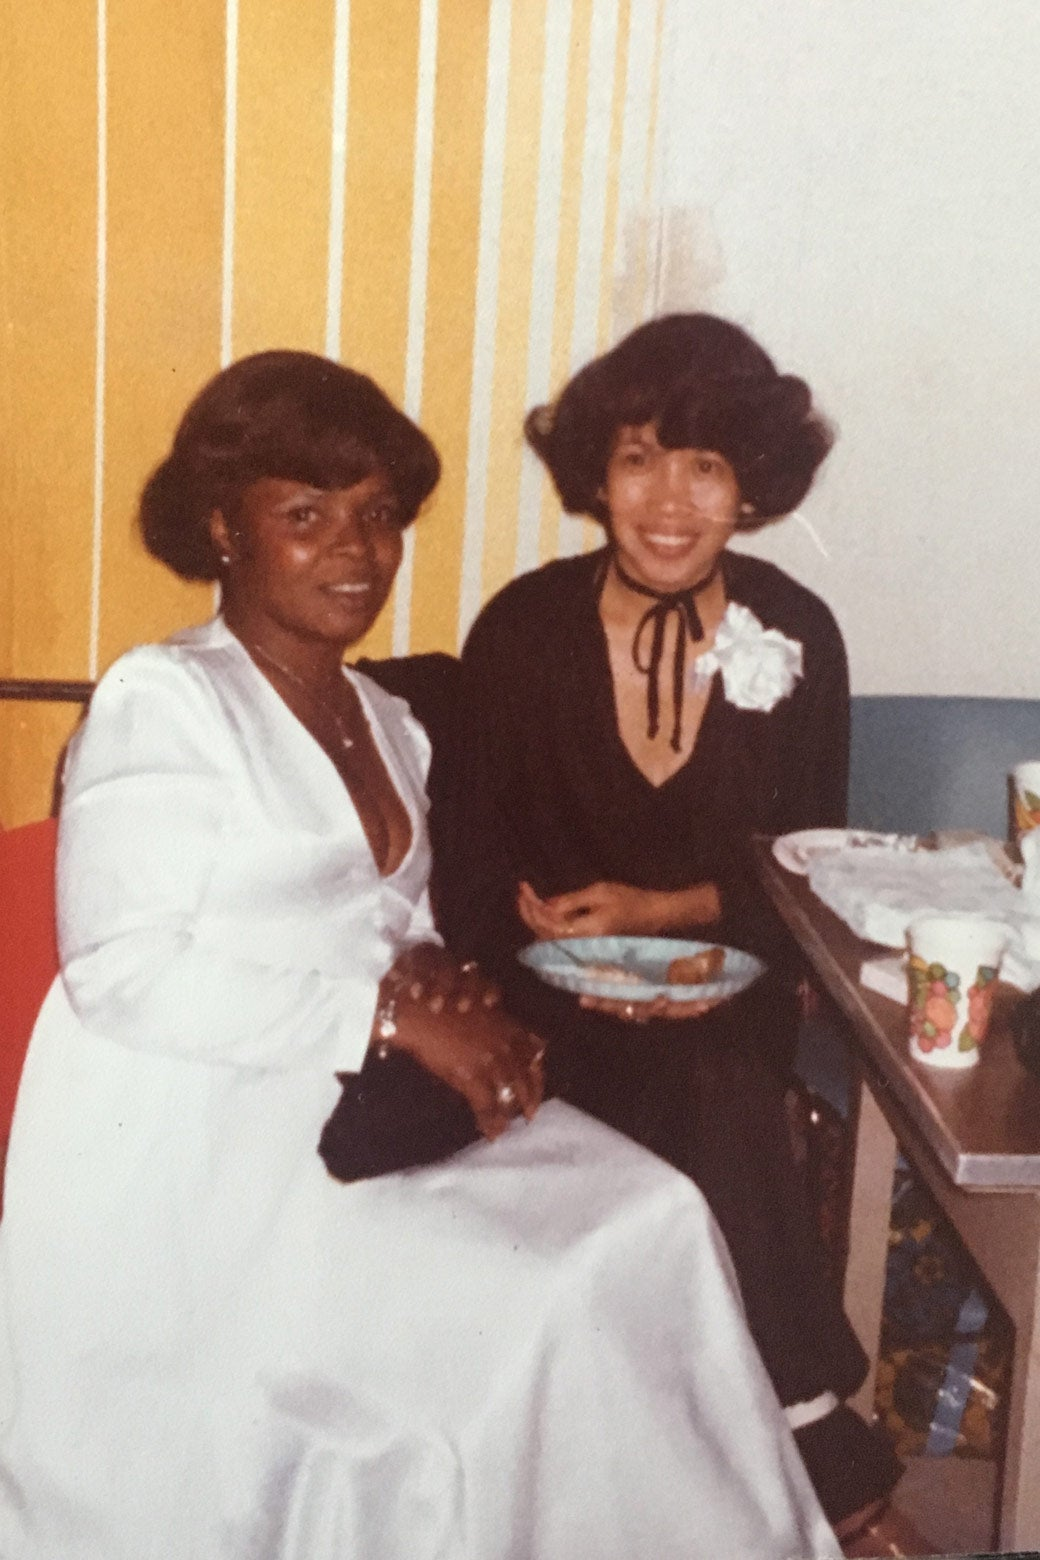 Evelyn Hill and an unidentified woman at an event.